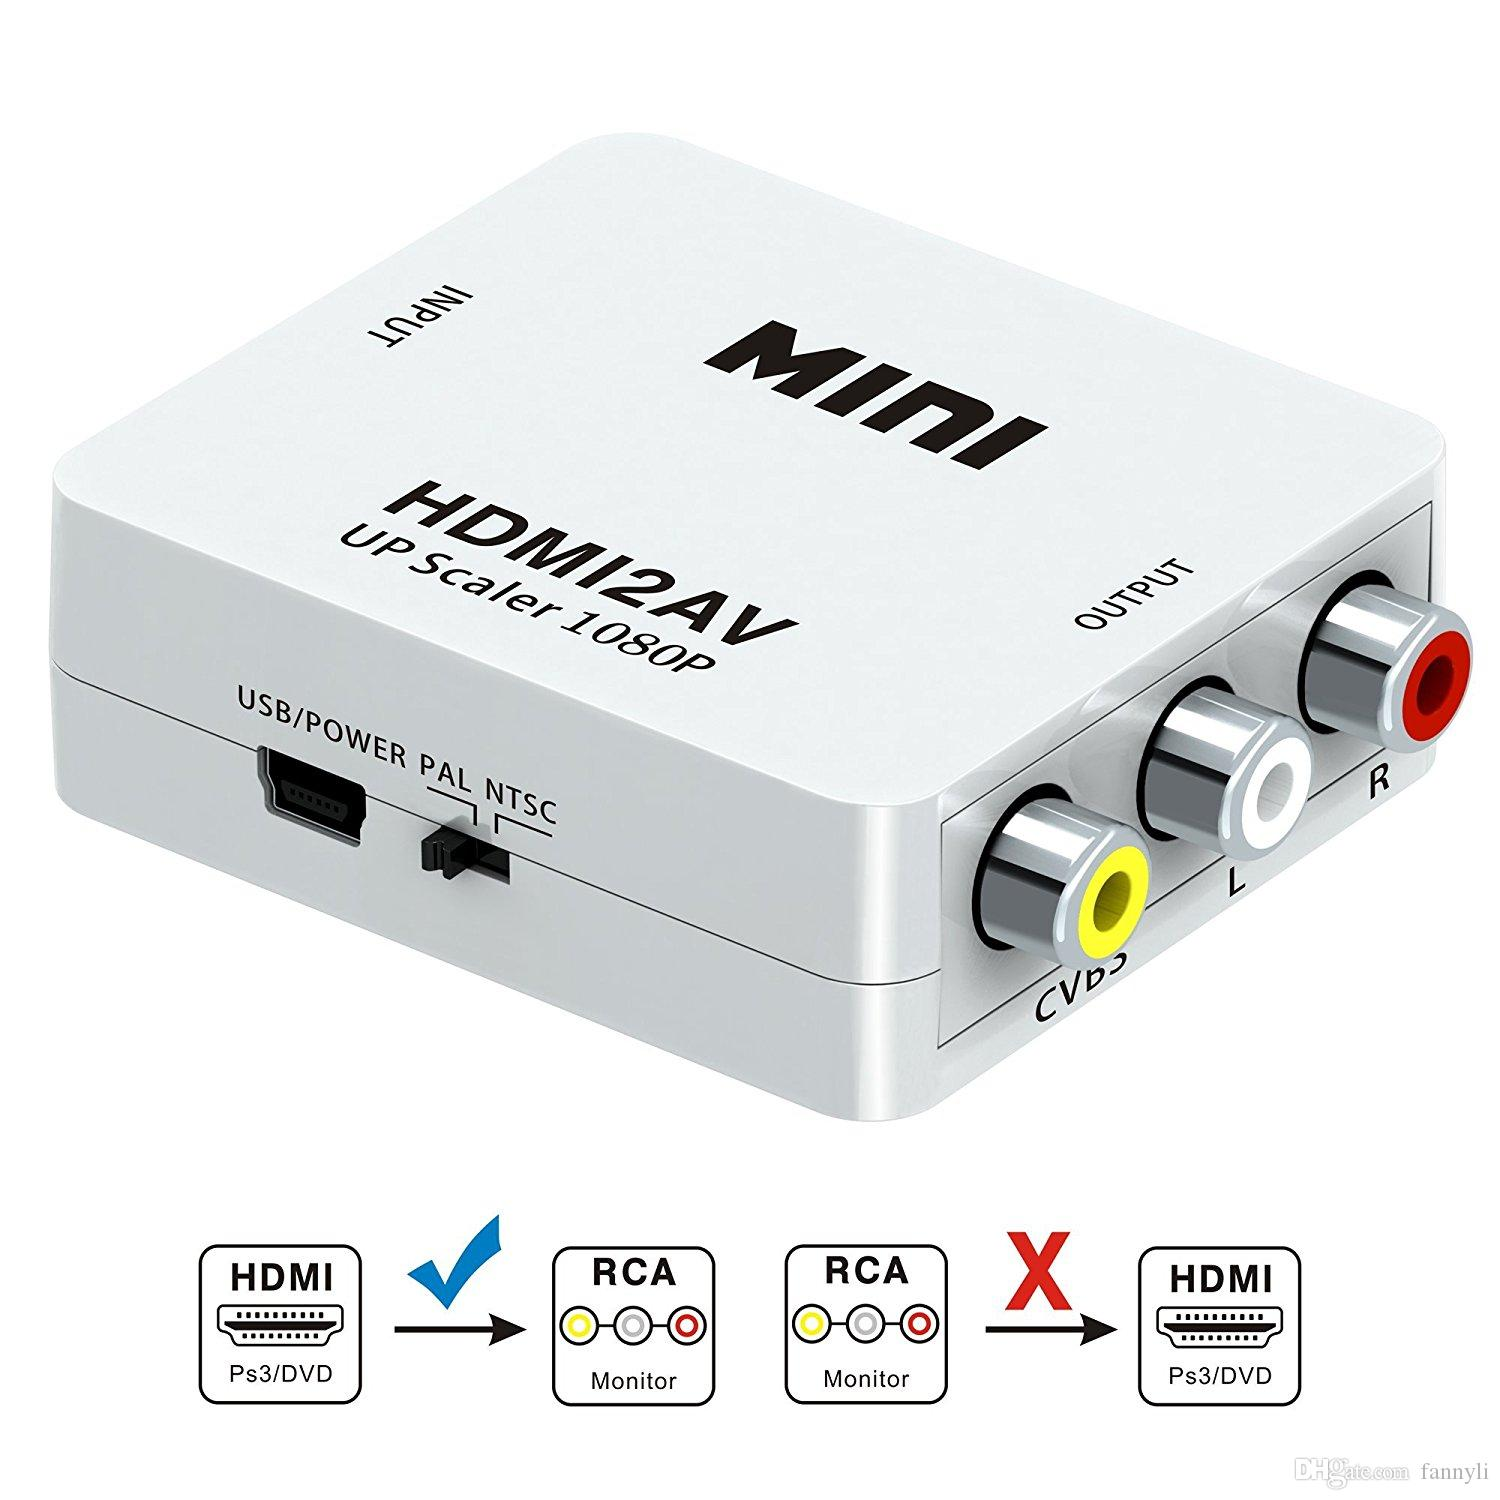 hight resolution of hdmi to av converter box hd to av cvsb video hdmi to vga adapter hdmi2av support ntsc and pal output vga to hdmi adapter with audio vga to hdmi adapters